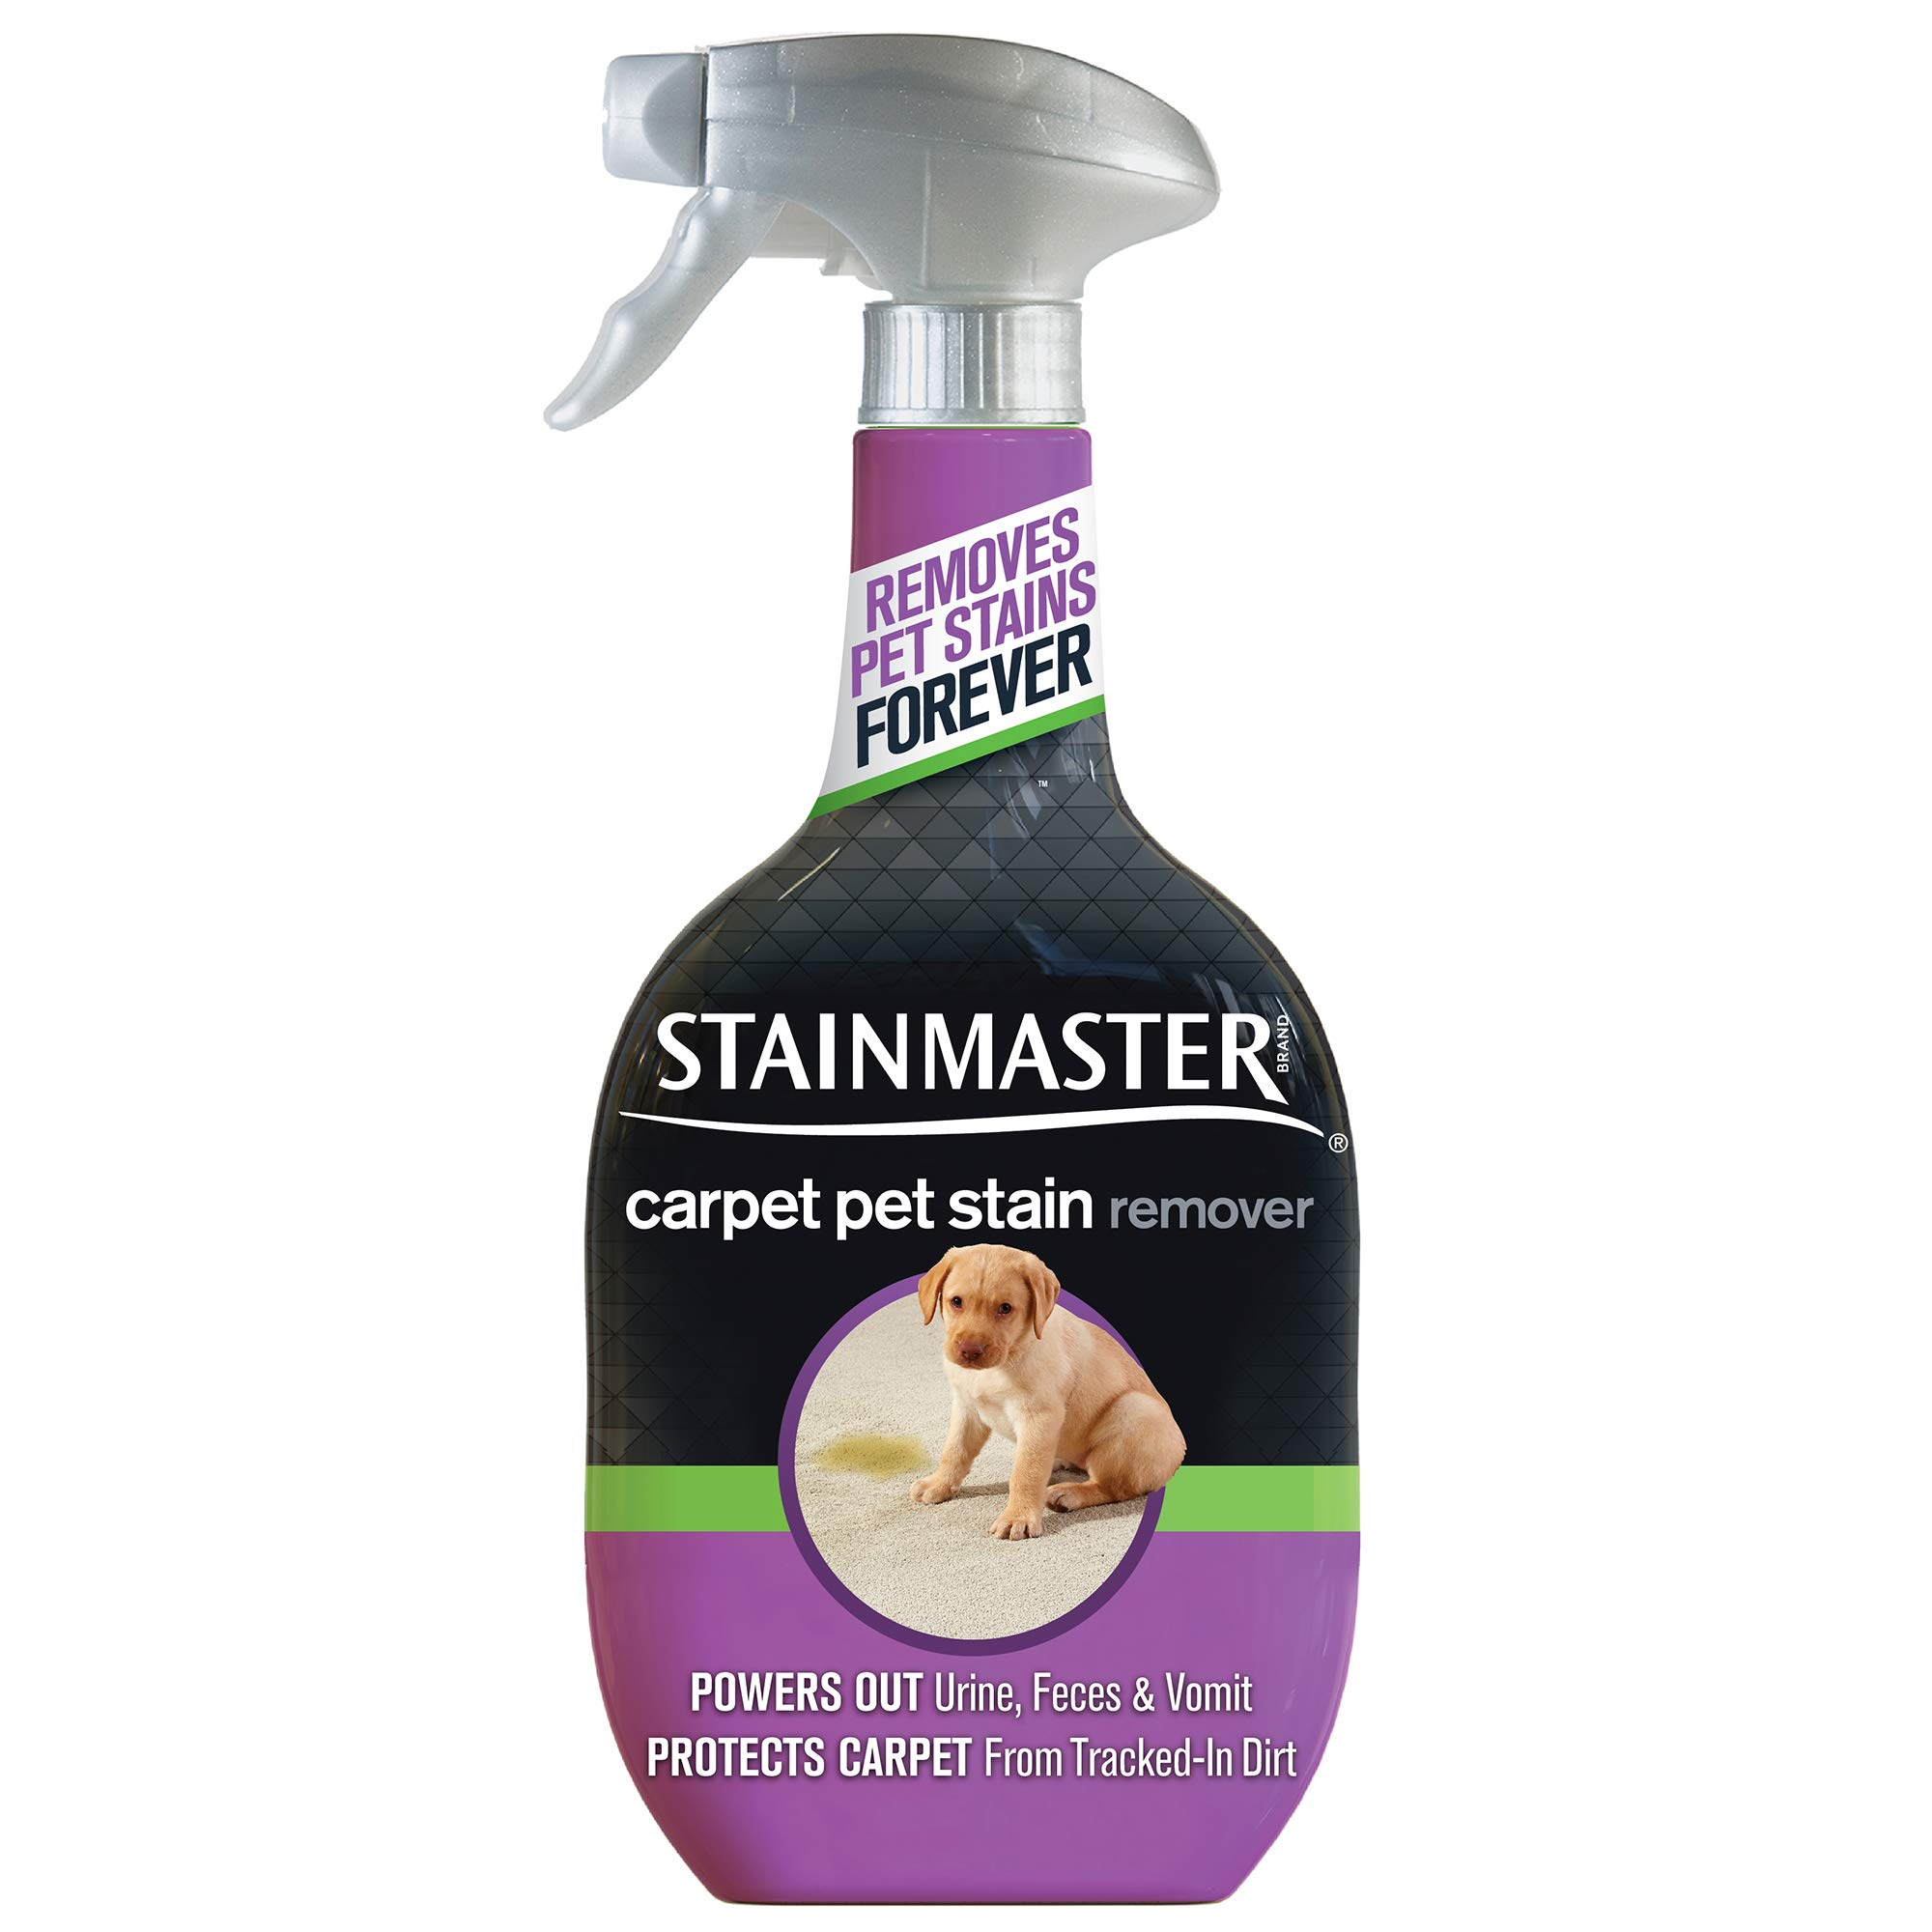 STAINMASTER Carpet Pet Stain & Odor Remover Cleaner, 22 Ounce by Stainmaster